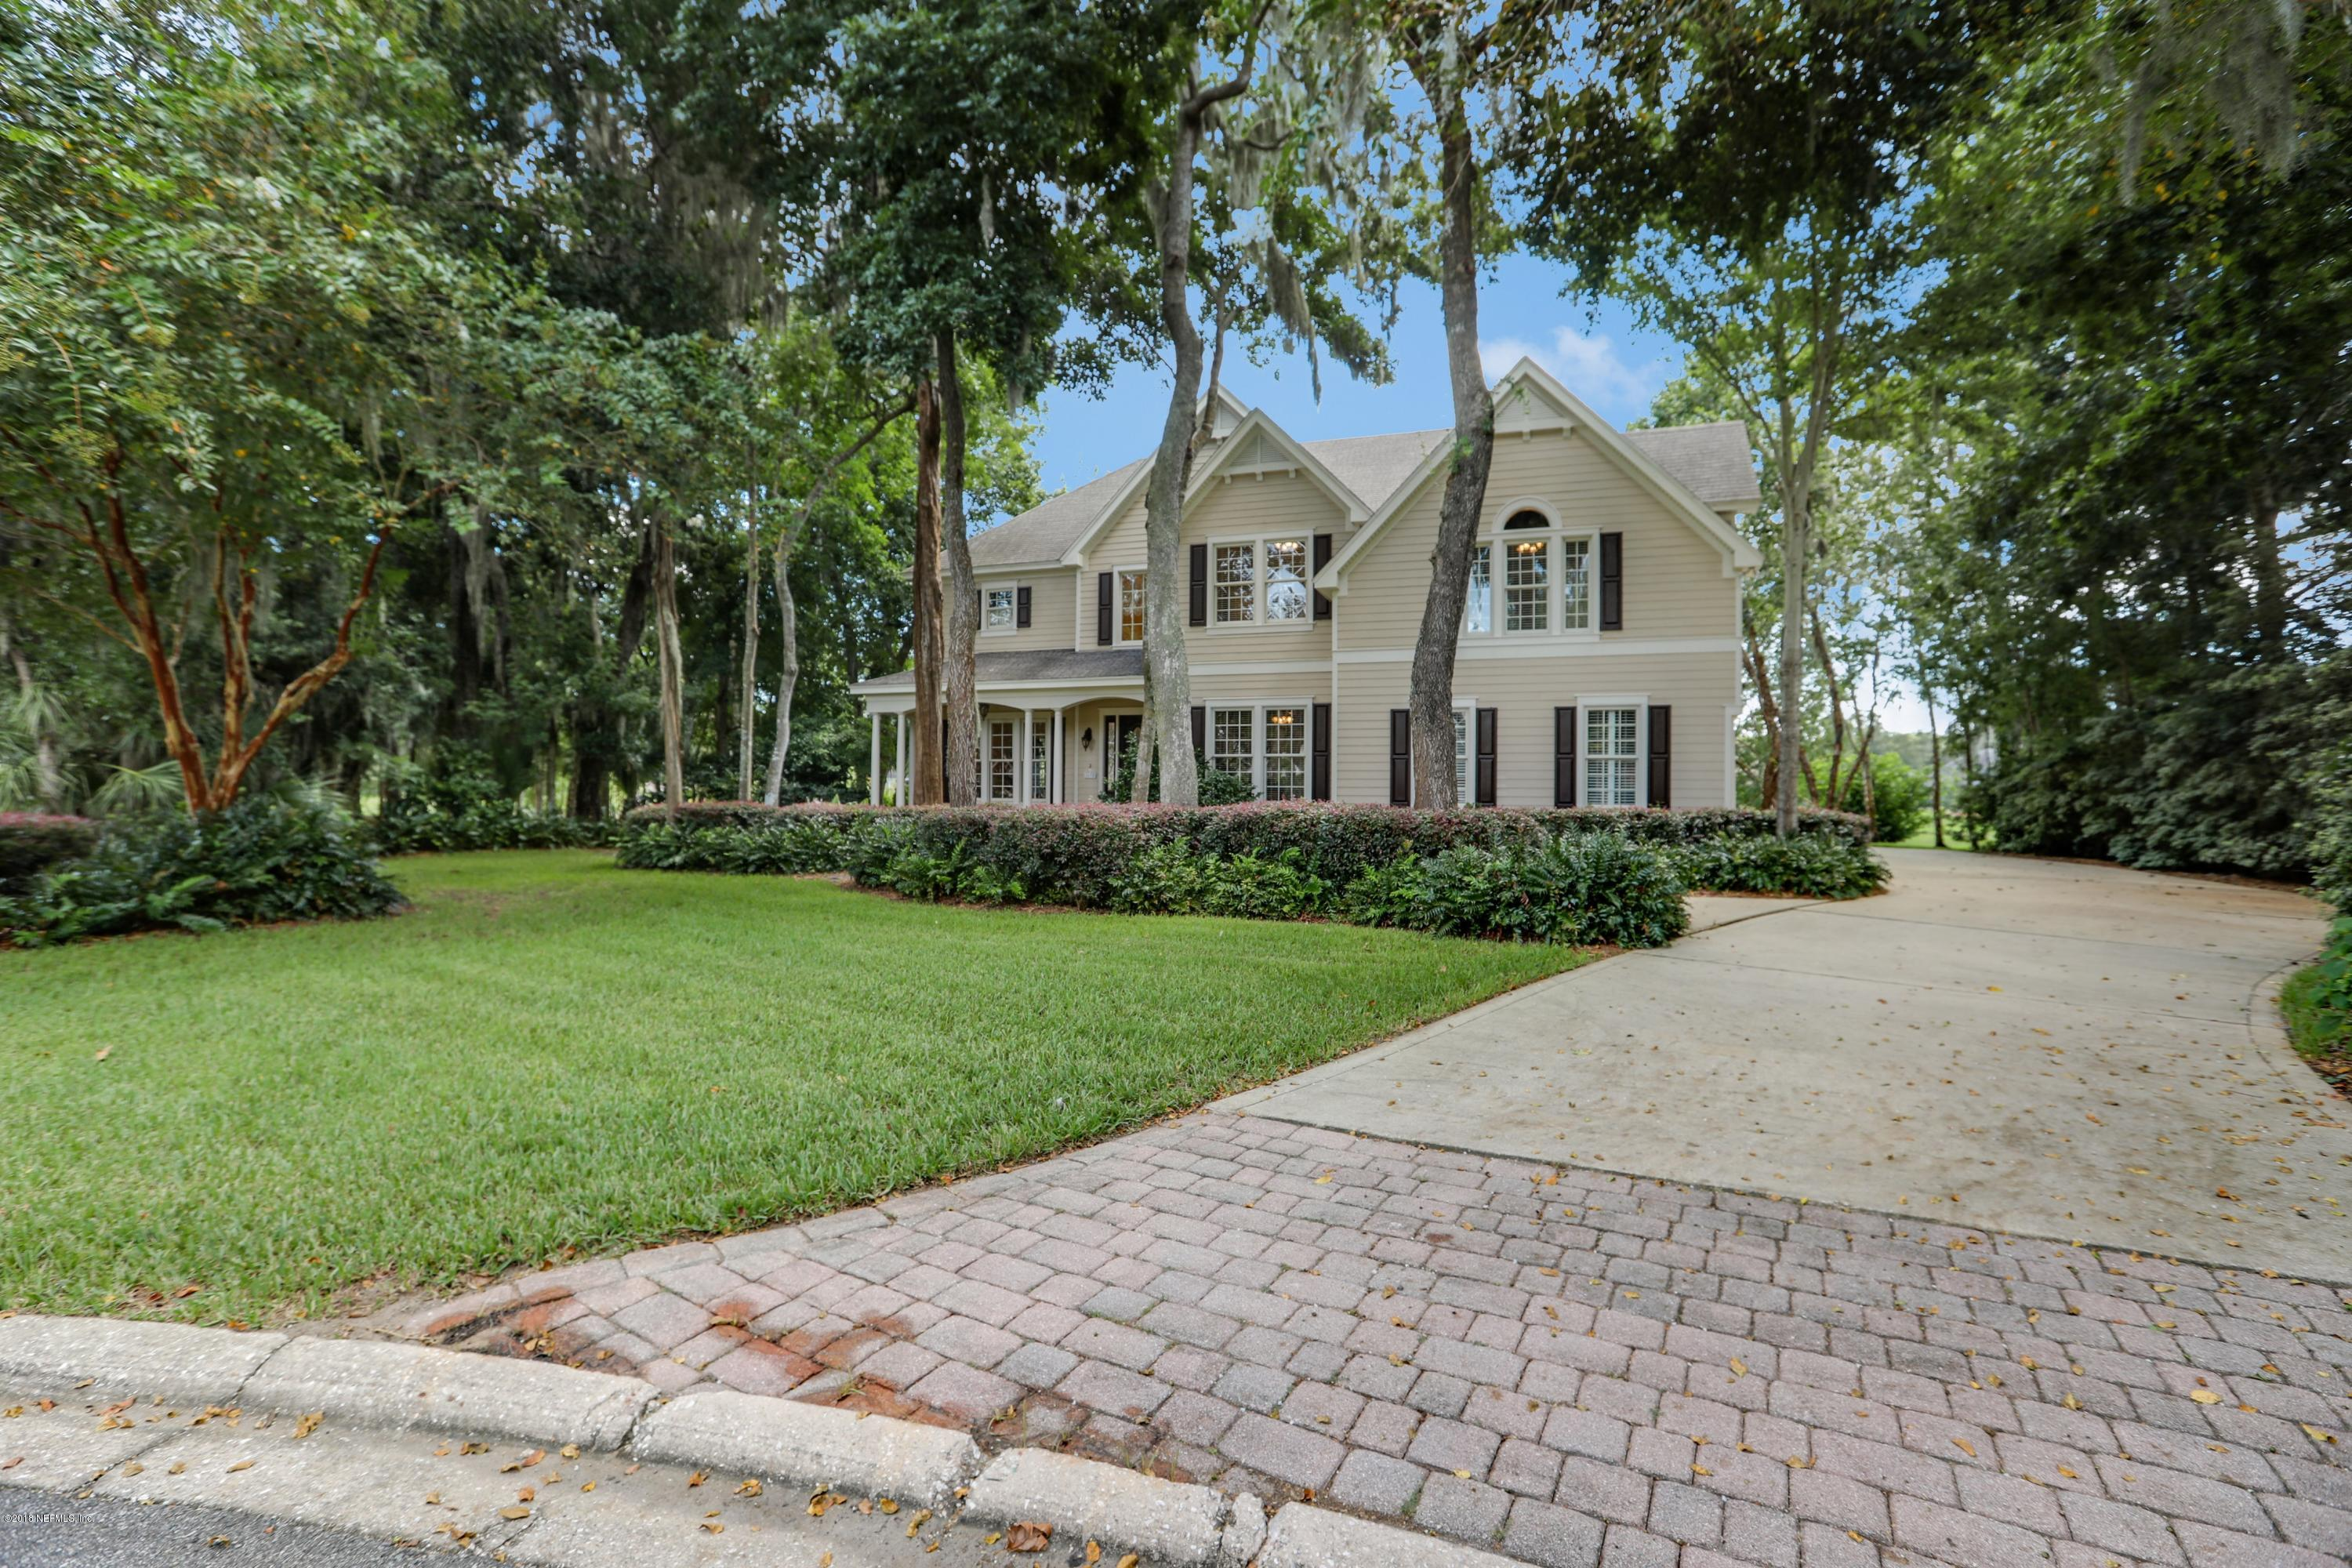 1695 NORTON HILL, JACKSONVILLE, FLORIDA 32225, 5 Bedrooms Bedrooms, ,4 BathroomsBathrooms,Residential - single family,For sale,NORTON HILL,955321